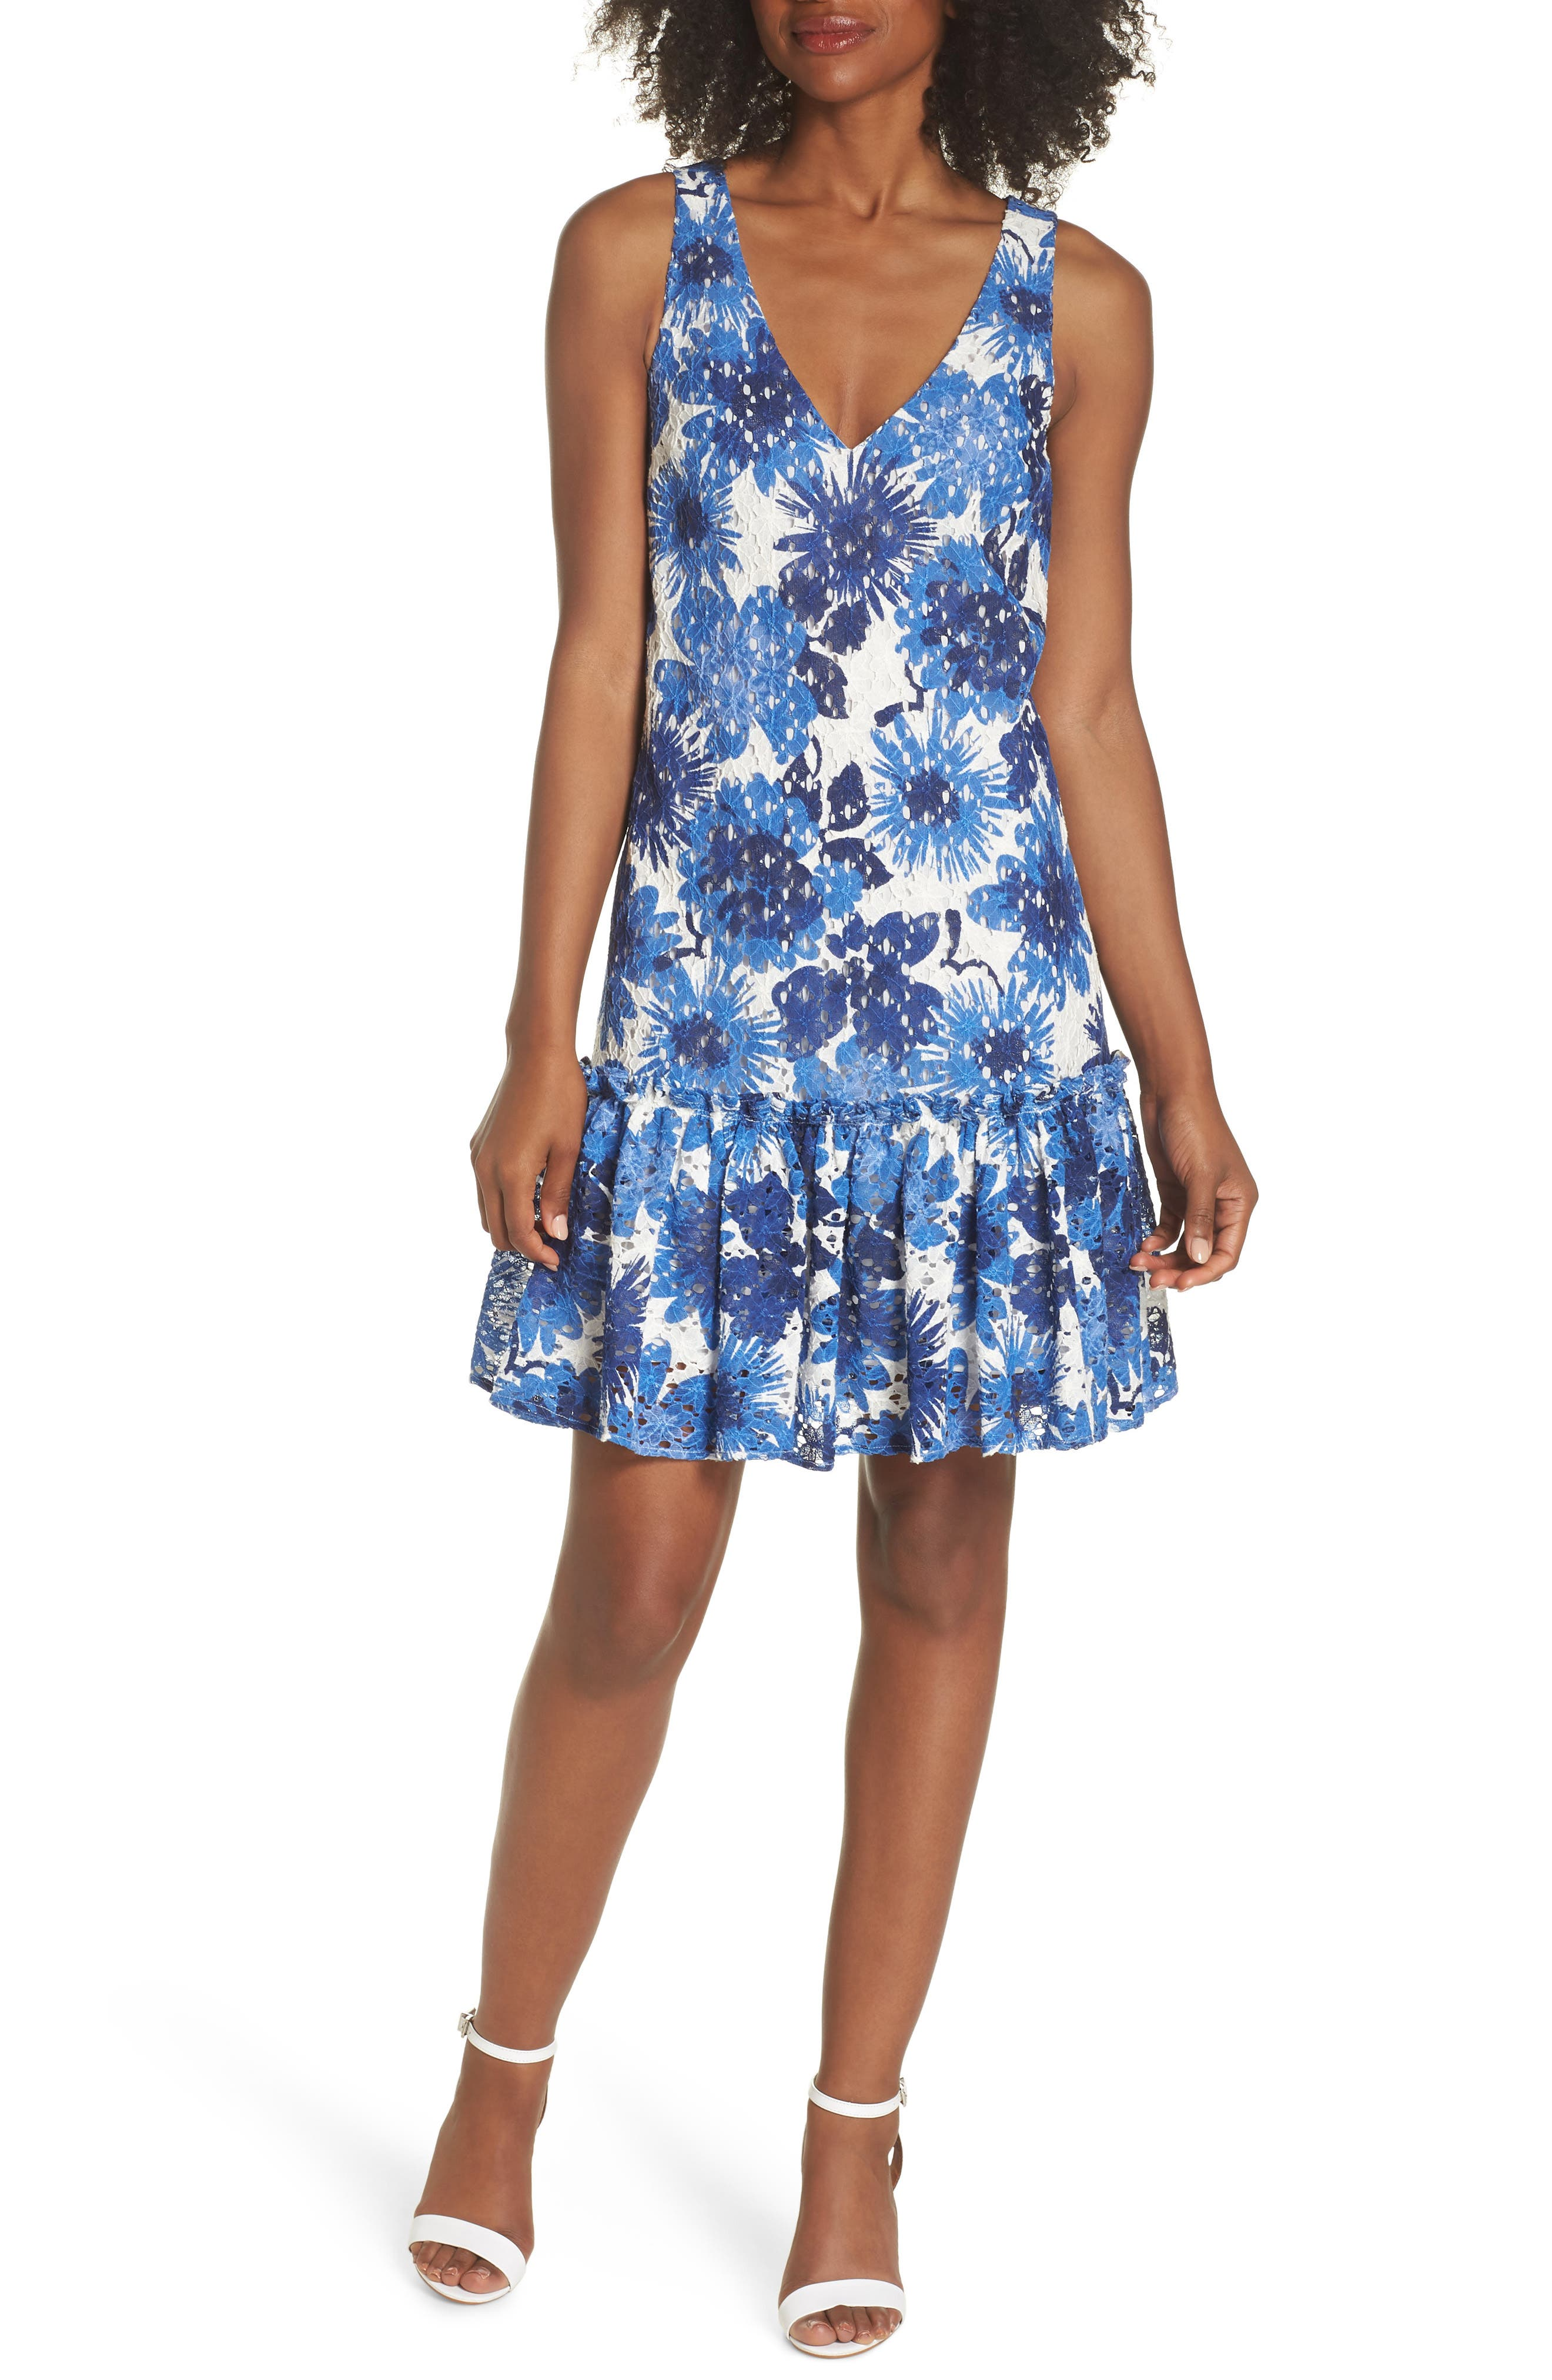 La Costa Print Ruffle Hem Lace Dress,                             Main thumbnail 1, color,                             Multi